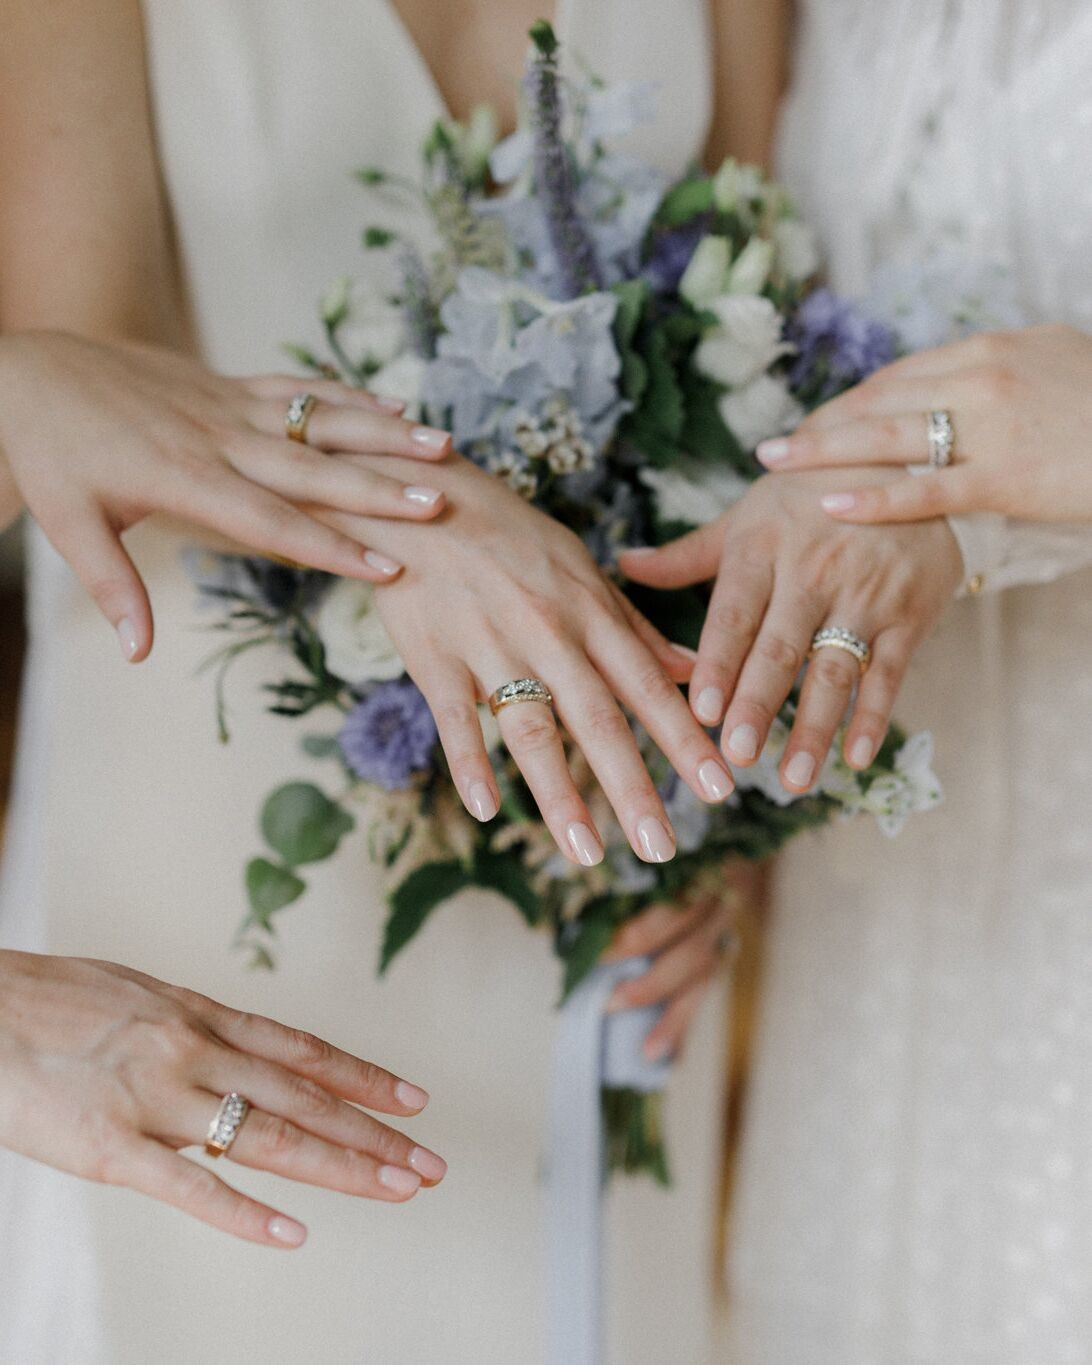 When's the Right Time to Get Your Pre-Wedding Manicure?